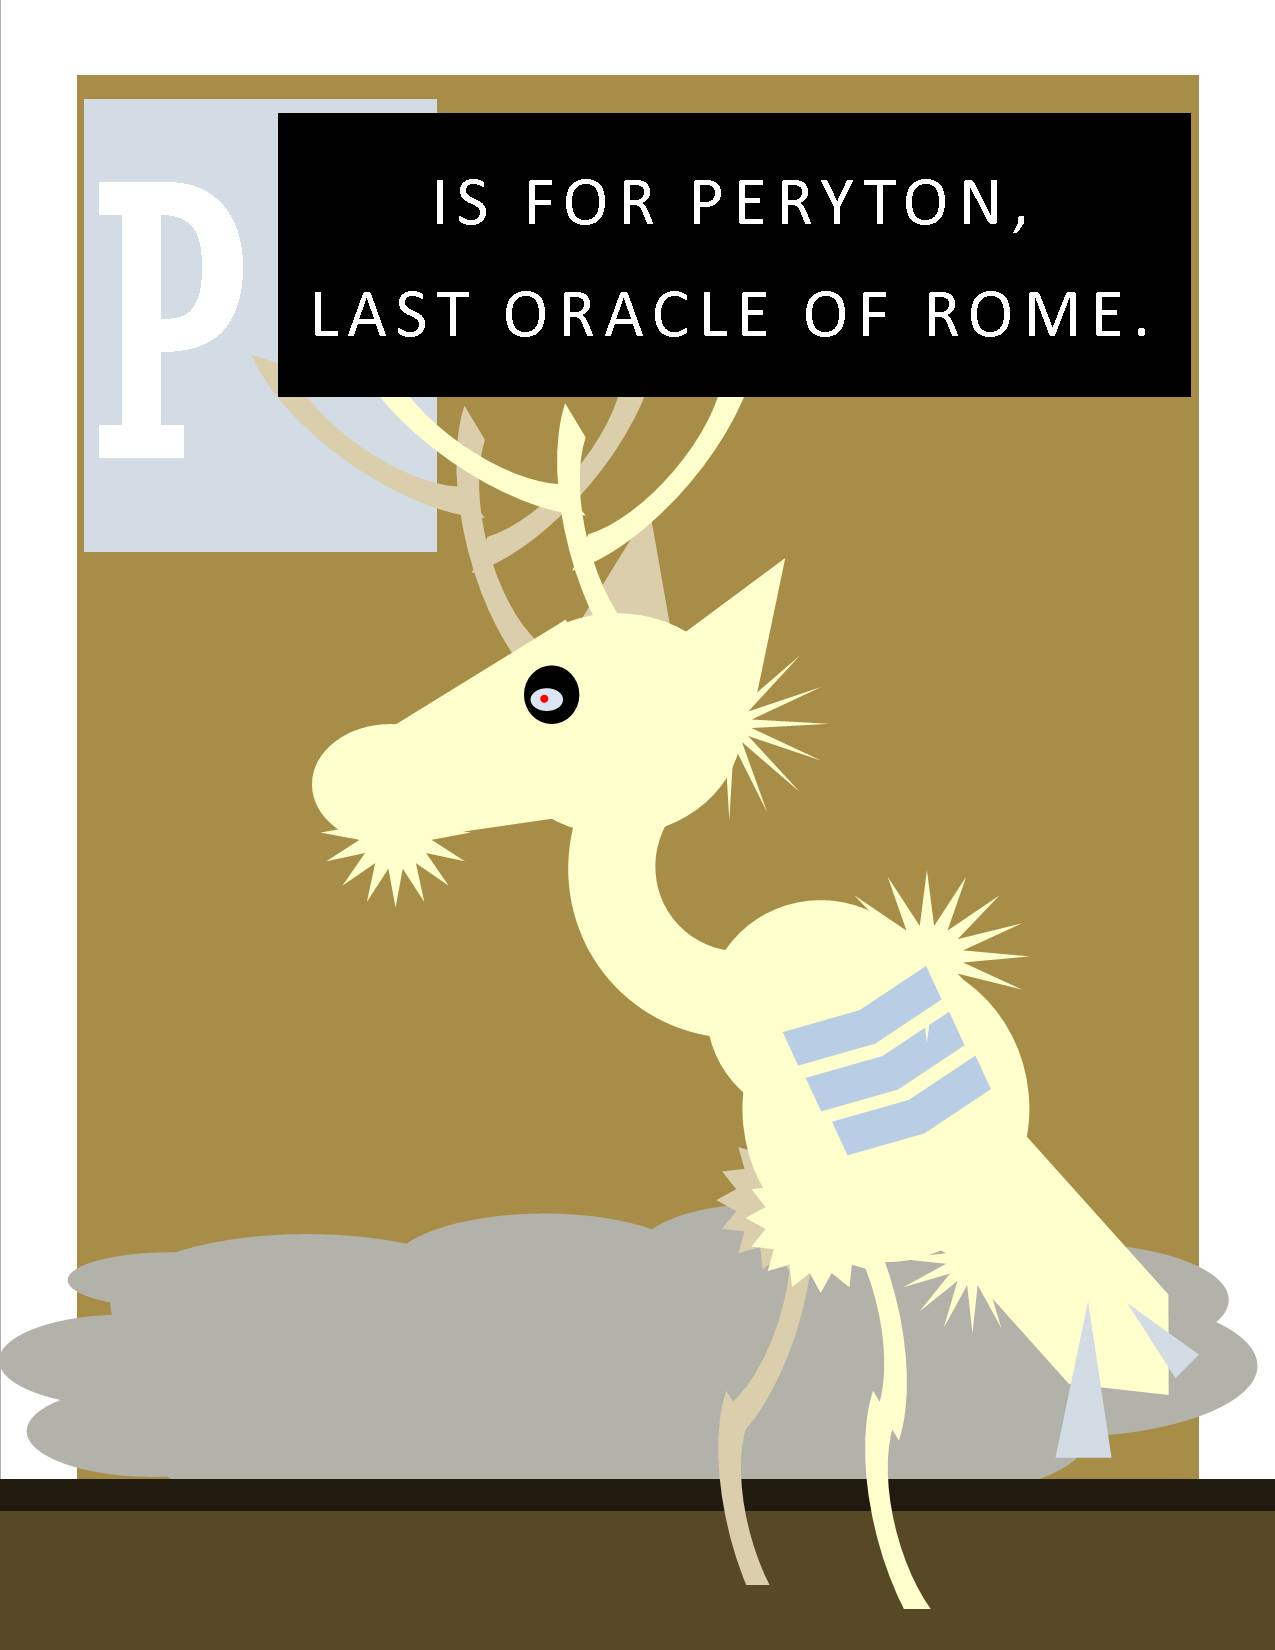 P is for Peryton, Last Oracle of Rome.